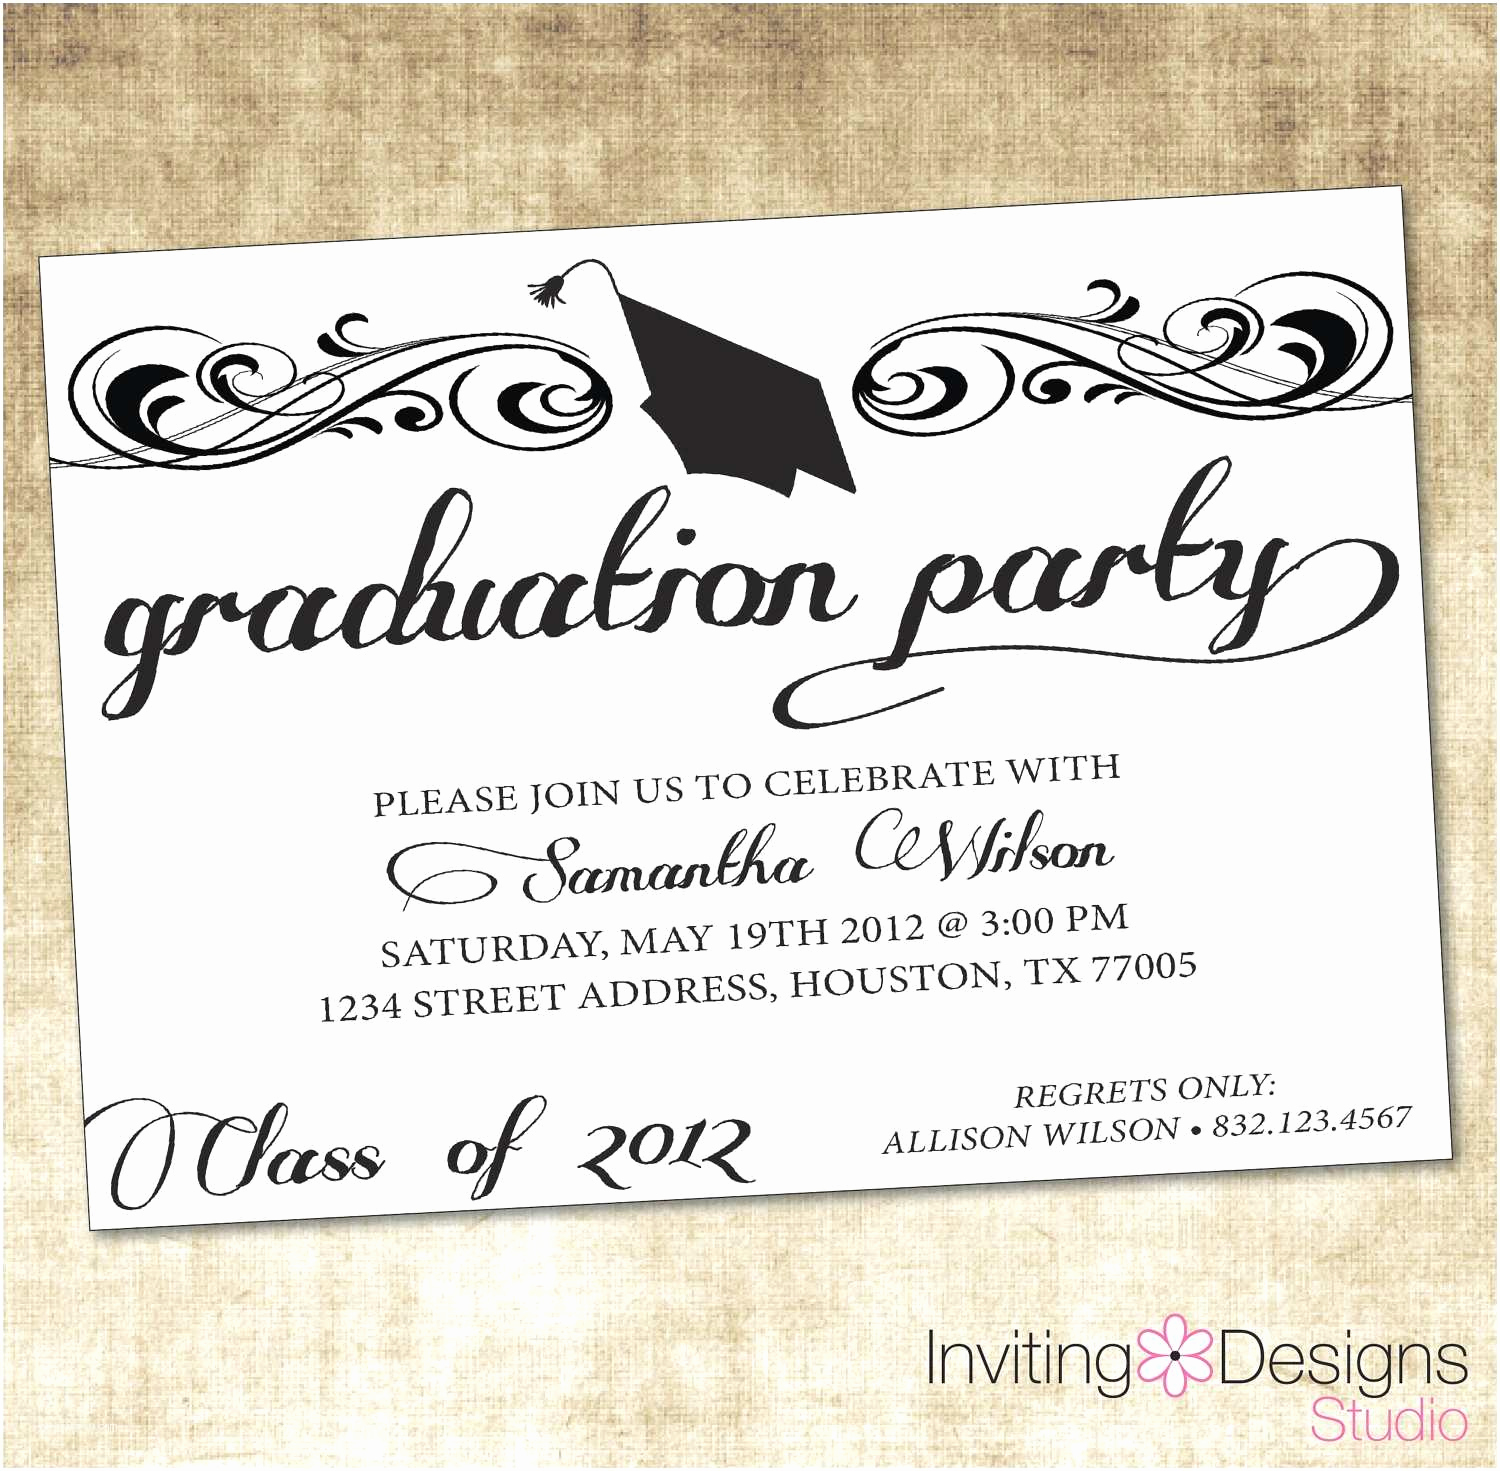 College Graduation Invitations Templates Inspirational College Graduation Party Invitations Templates Saab4fun